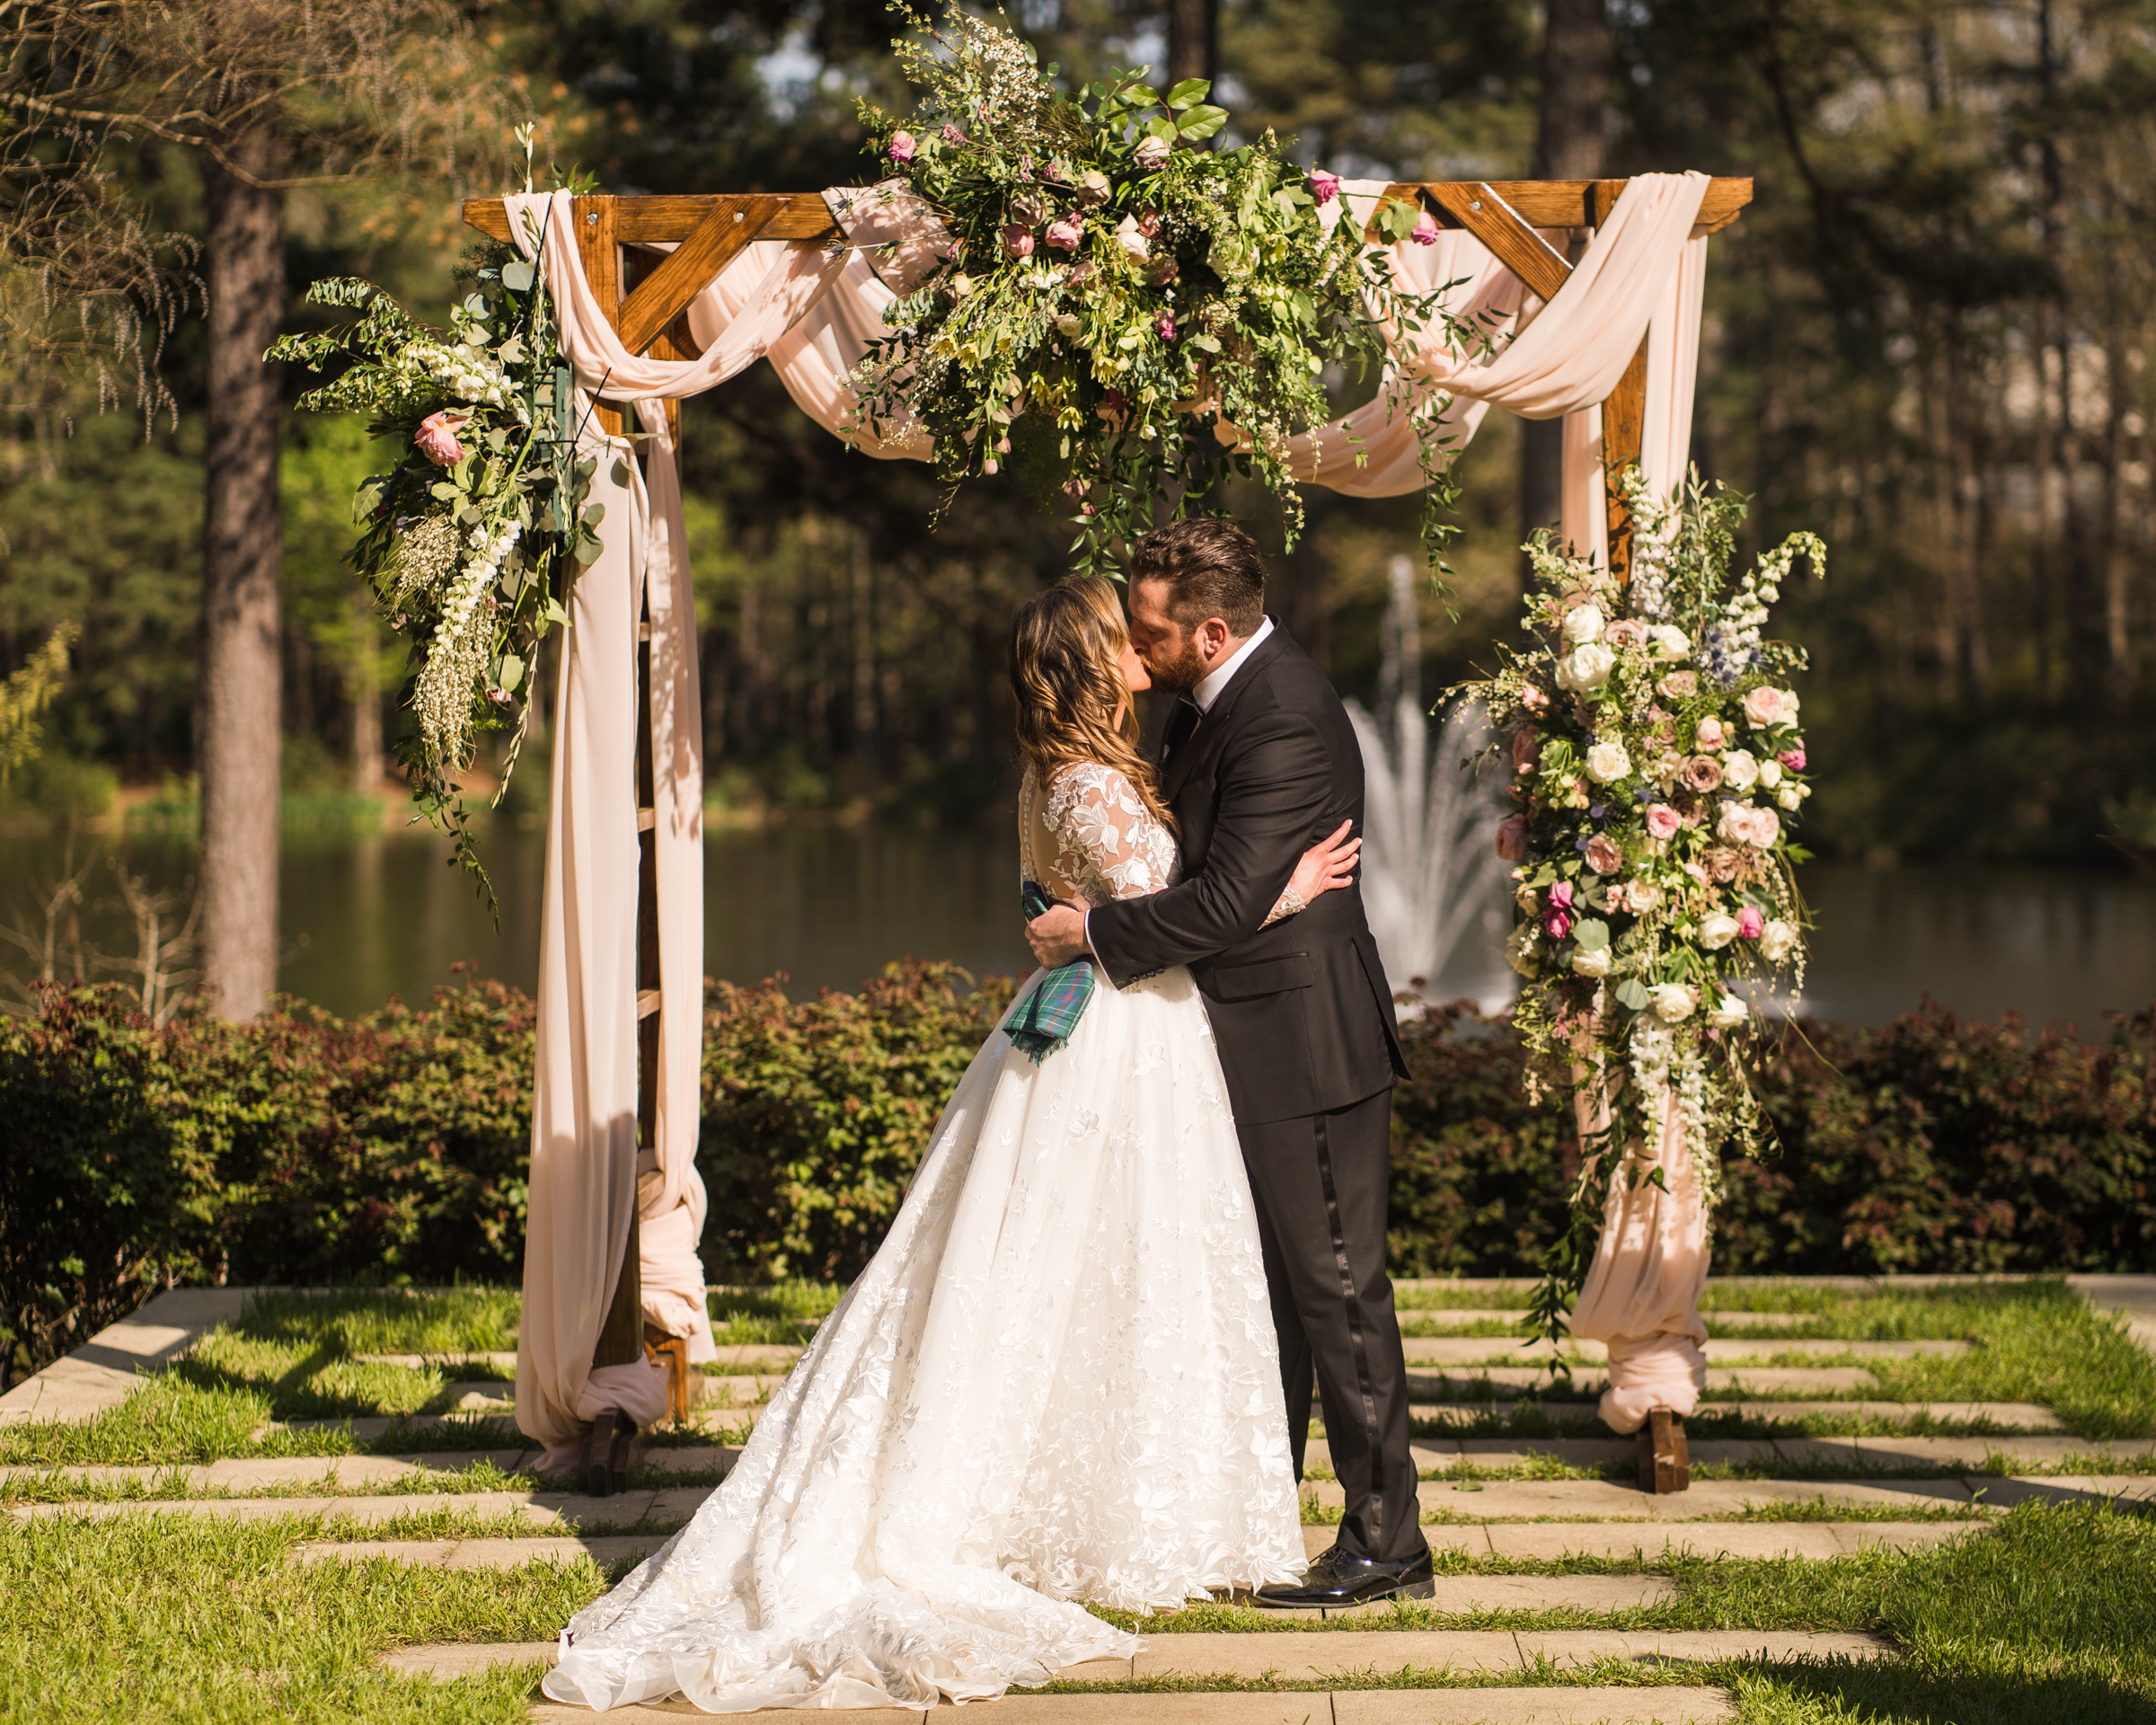 umstead hotel park wedding photography brittany harrison 24